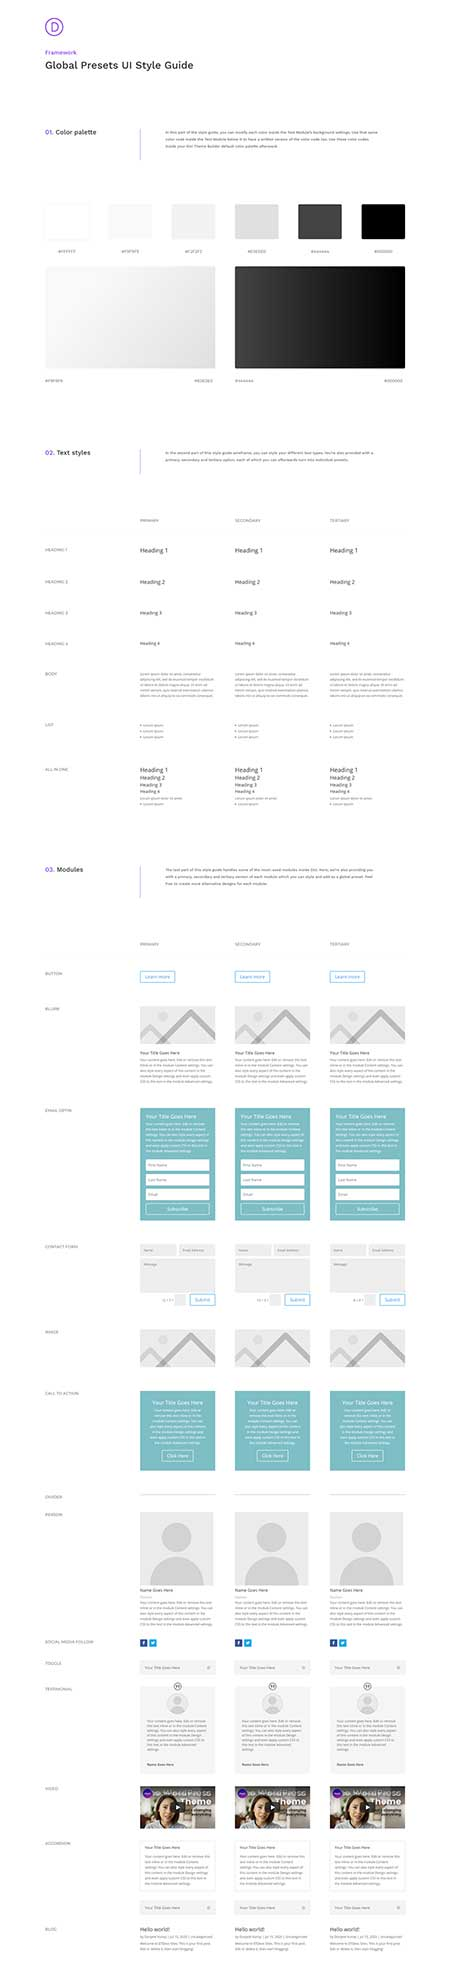 Divi global presets style guide